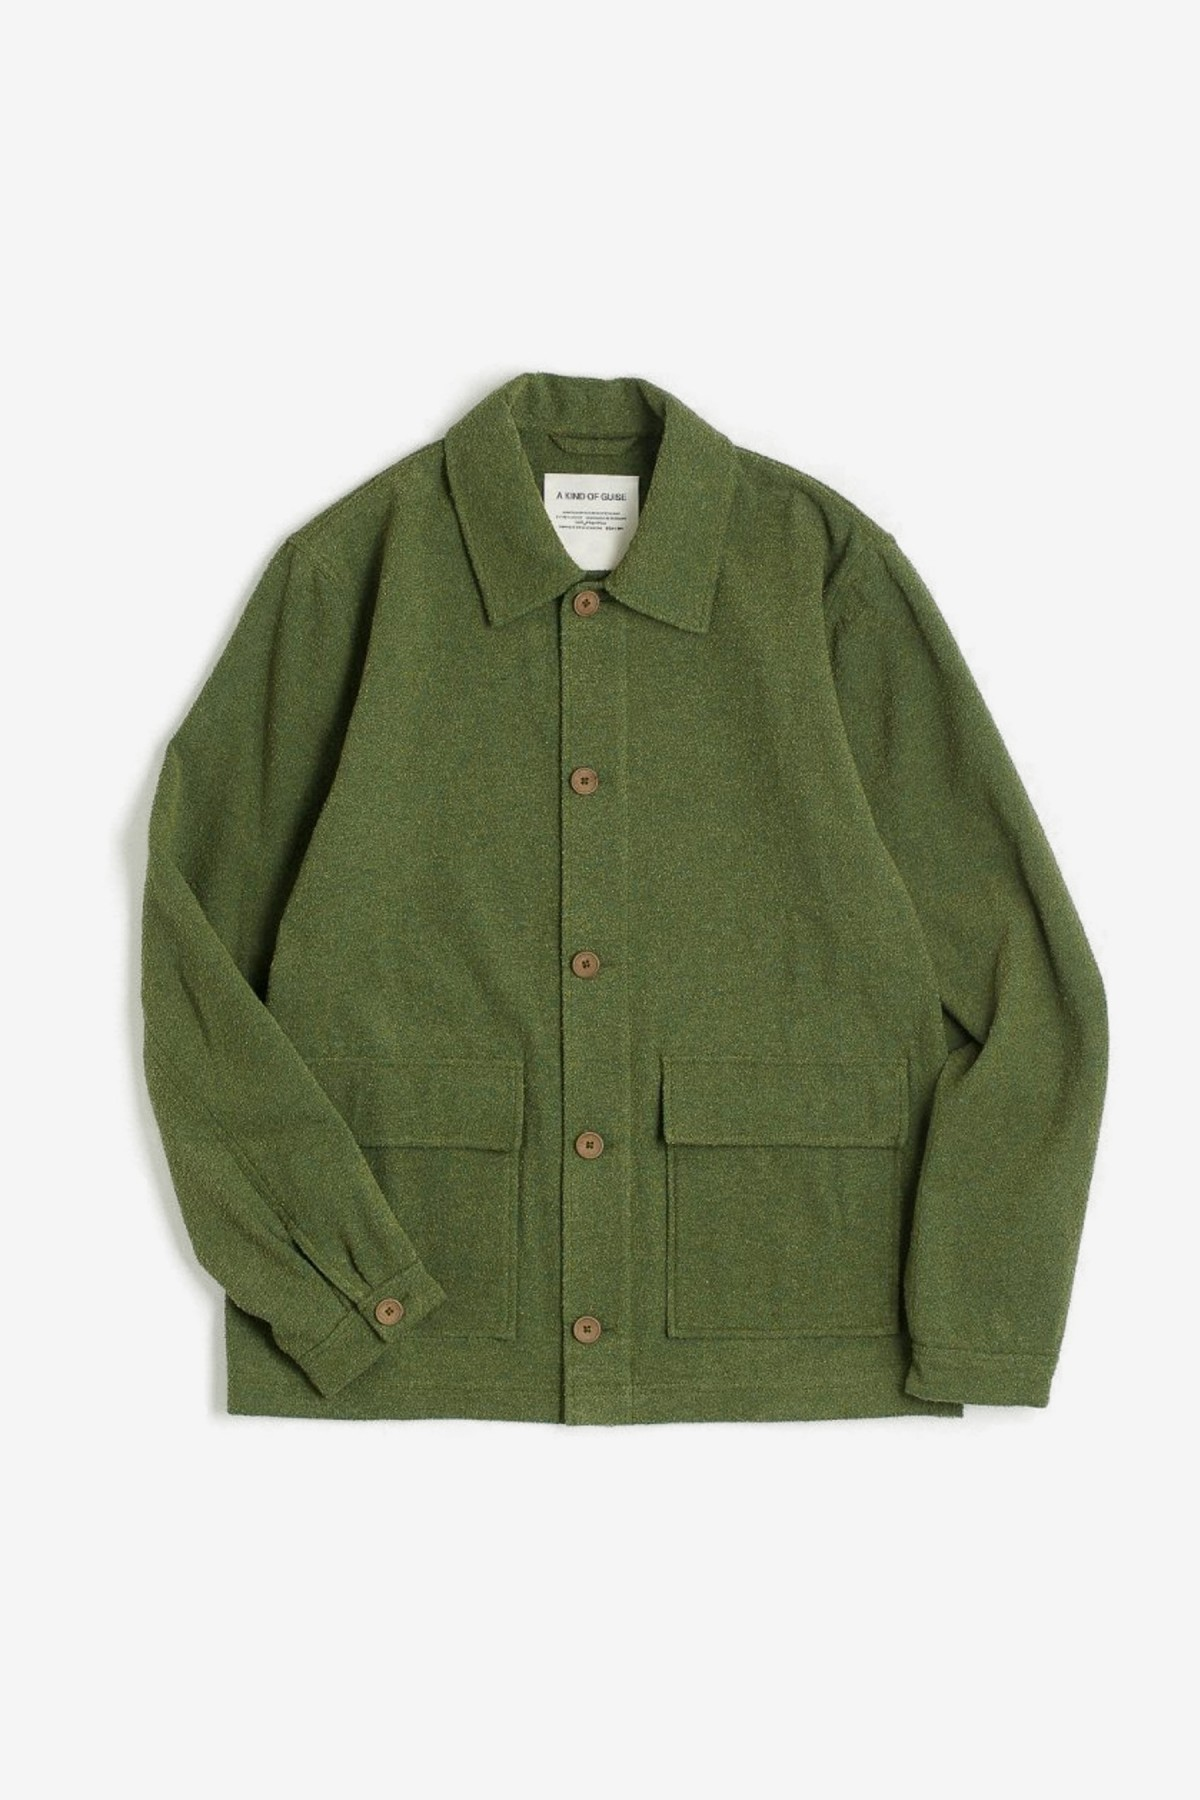 A Kind of Guise Jakarta Jacket in French Terry Green